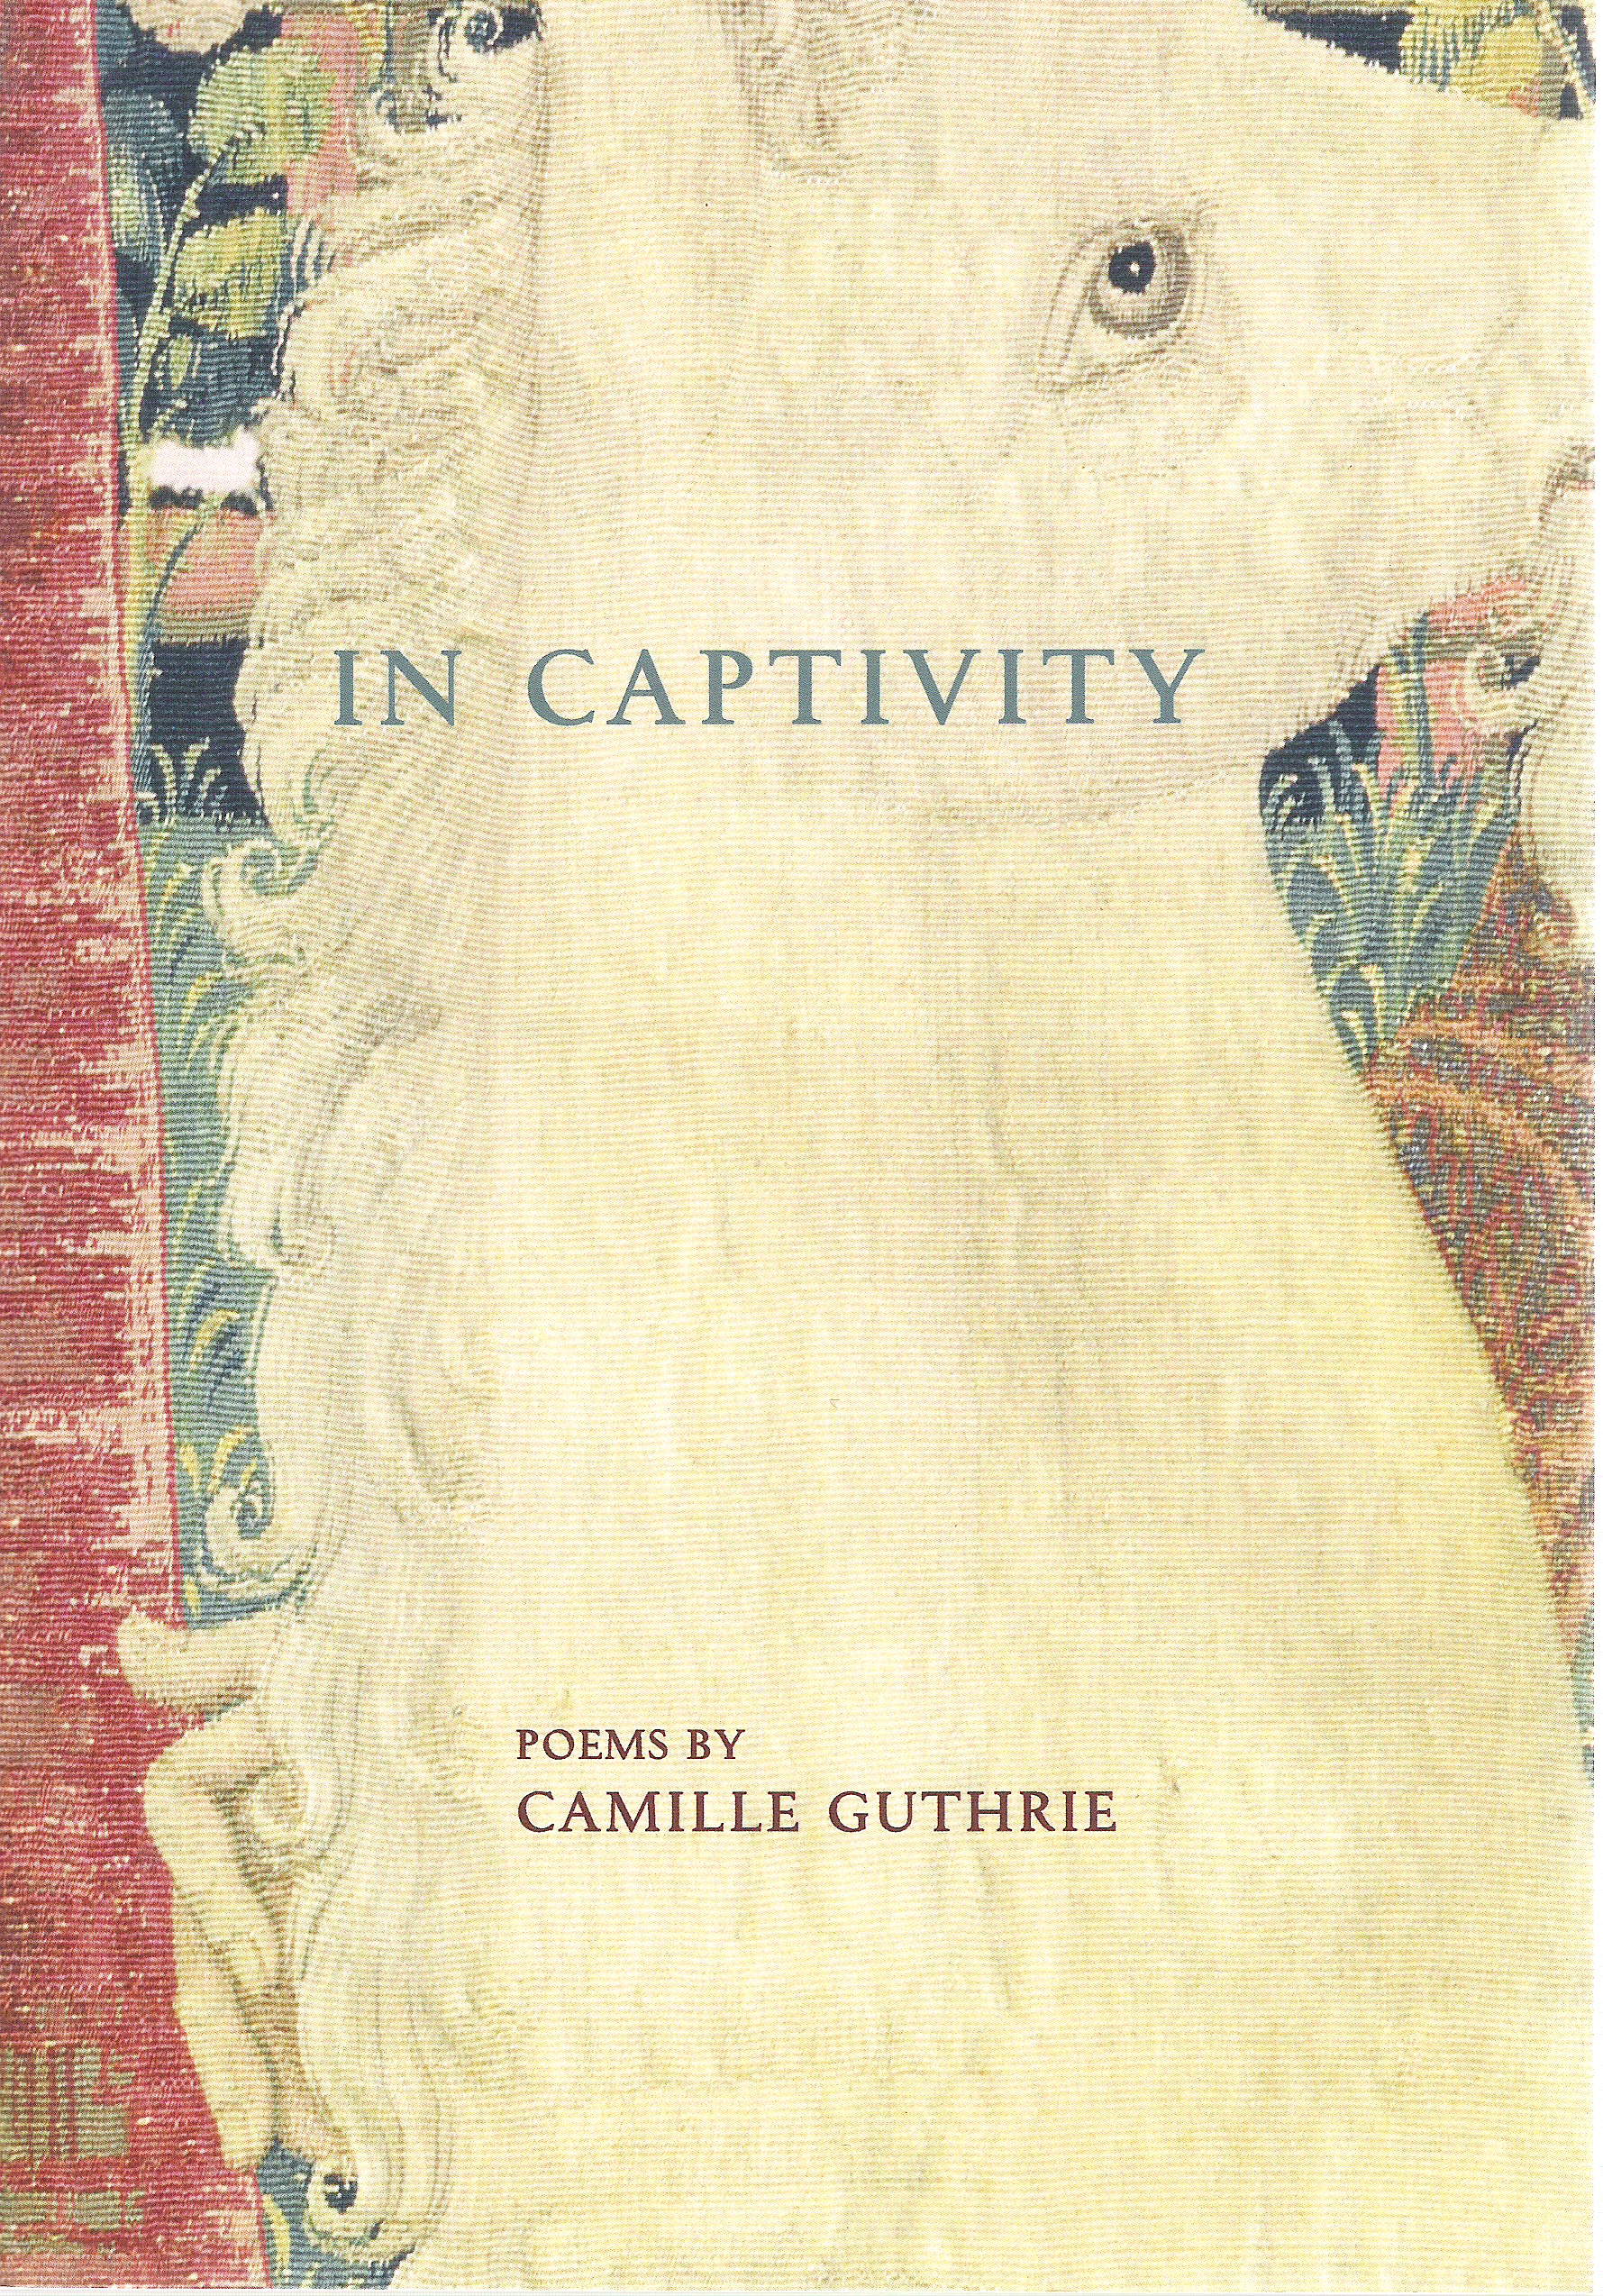 In Captivity by Camille Guthrie